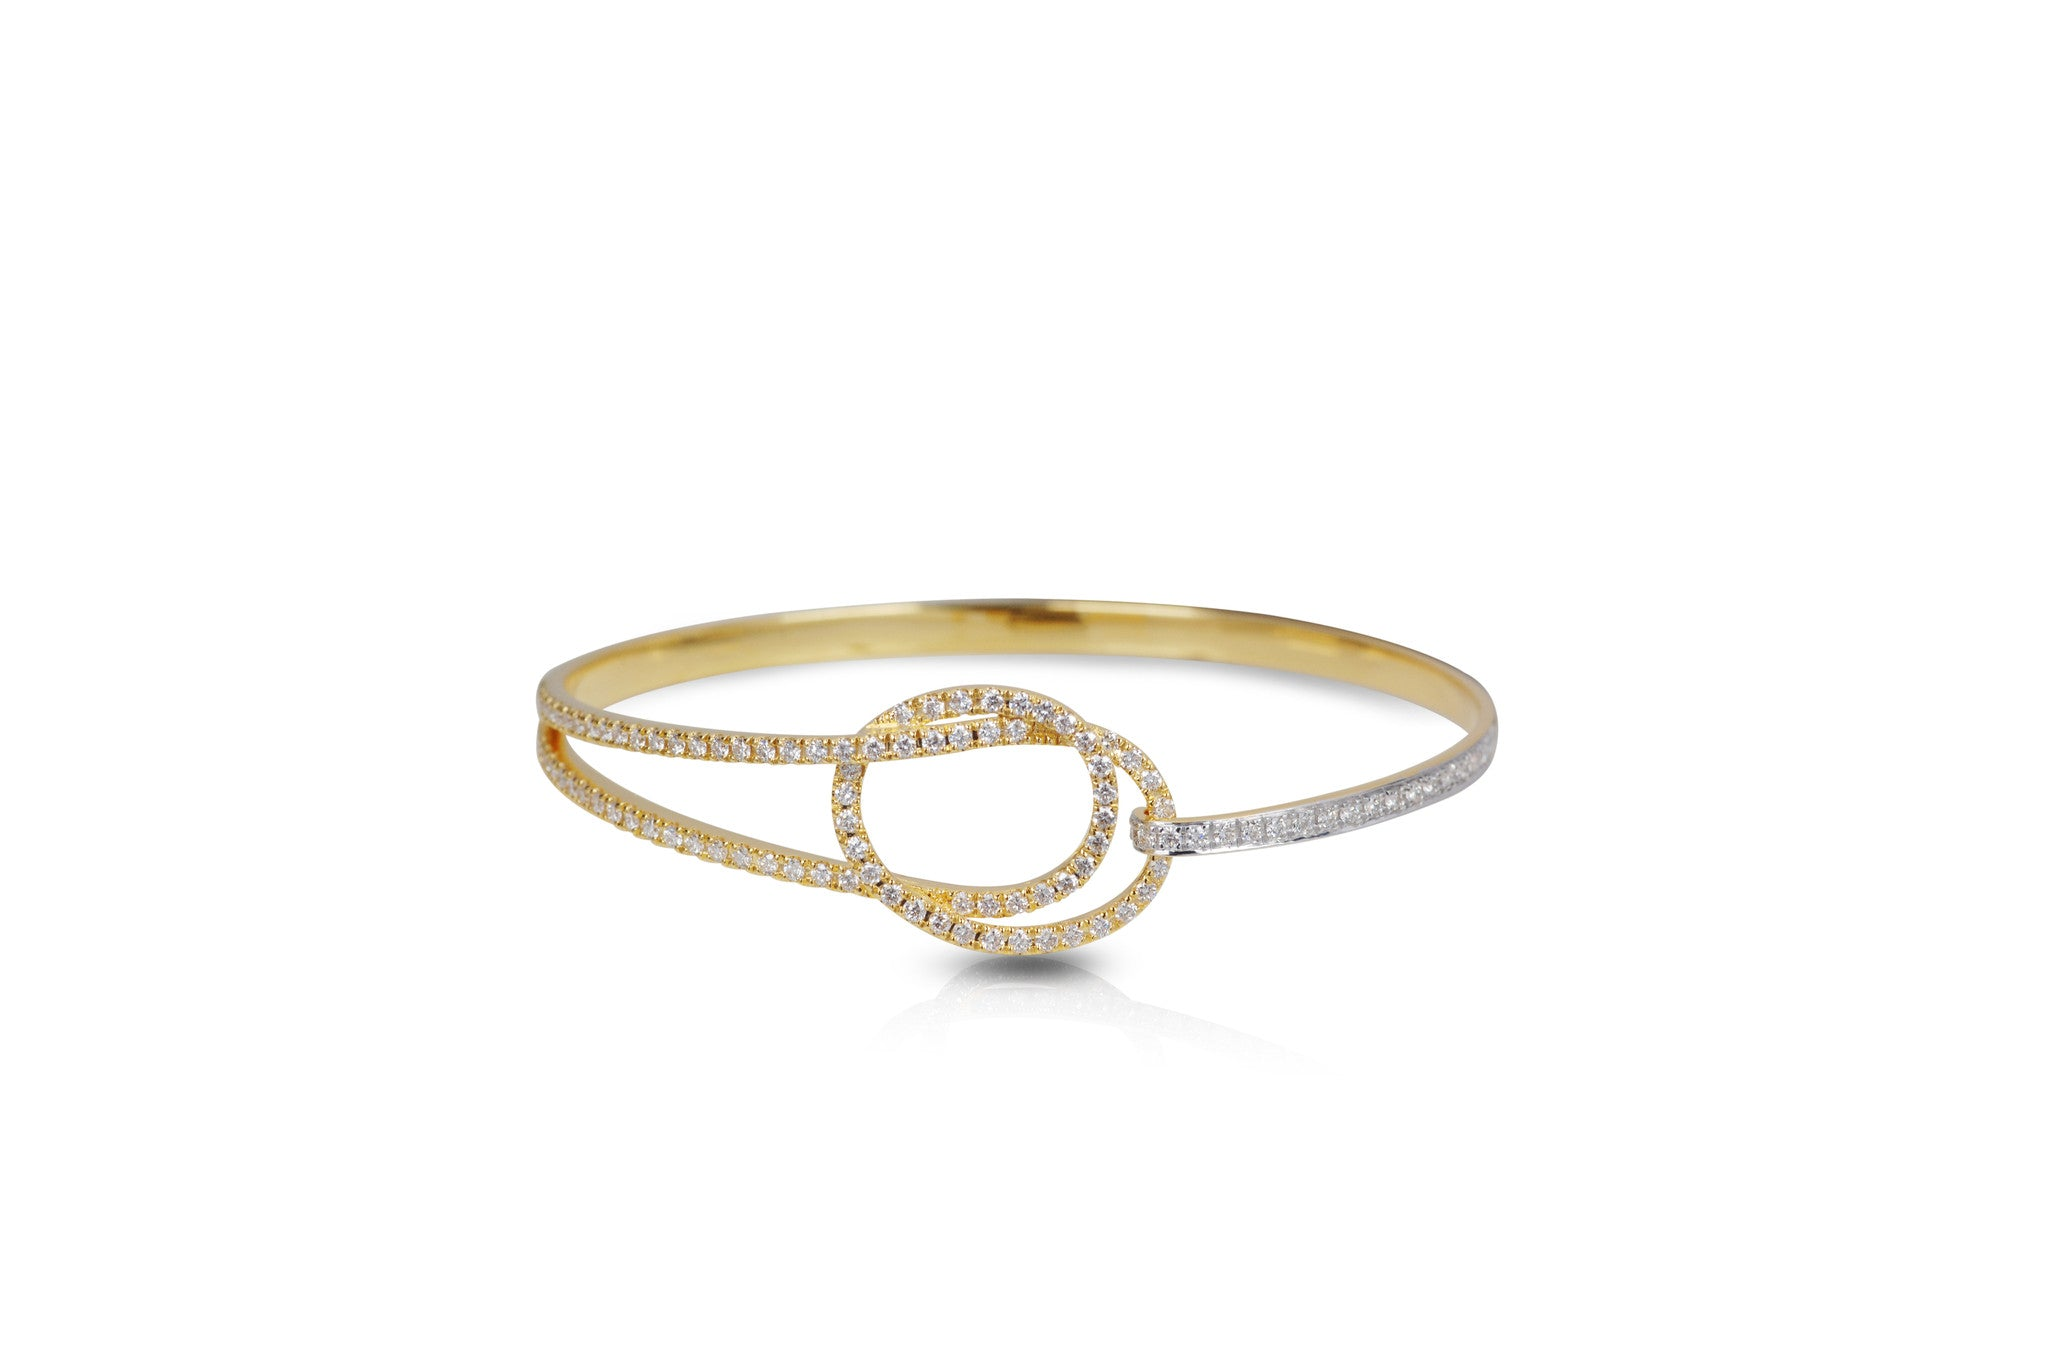 women wave for solid item bangle double bangles bracelets row jewelry real diamond in bracelet yellow gold from wedding natural